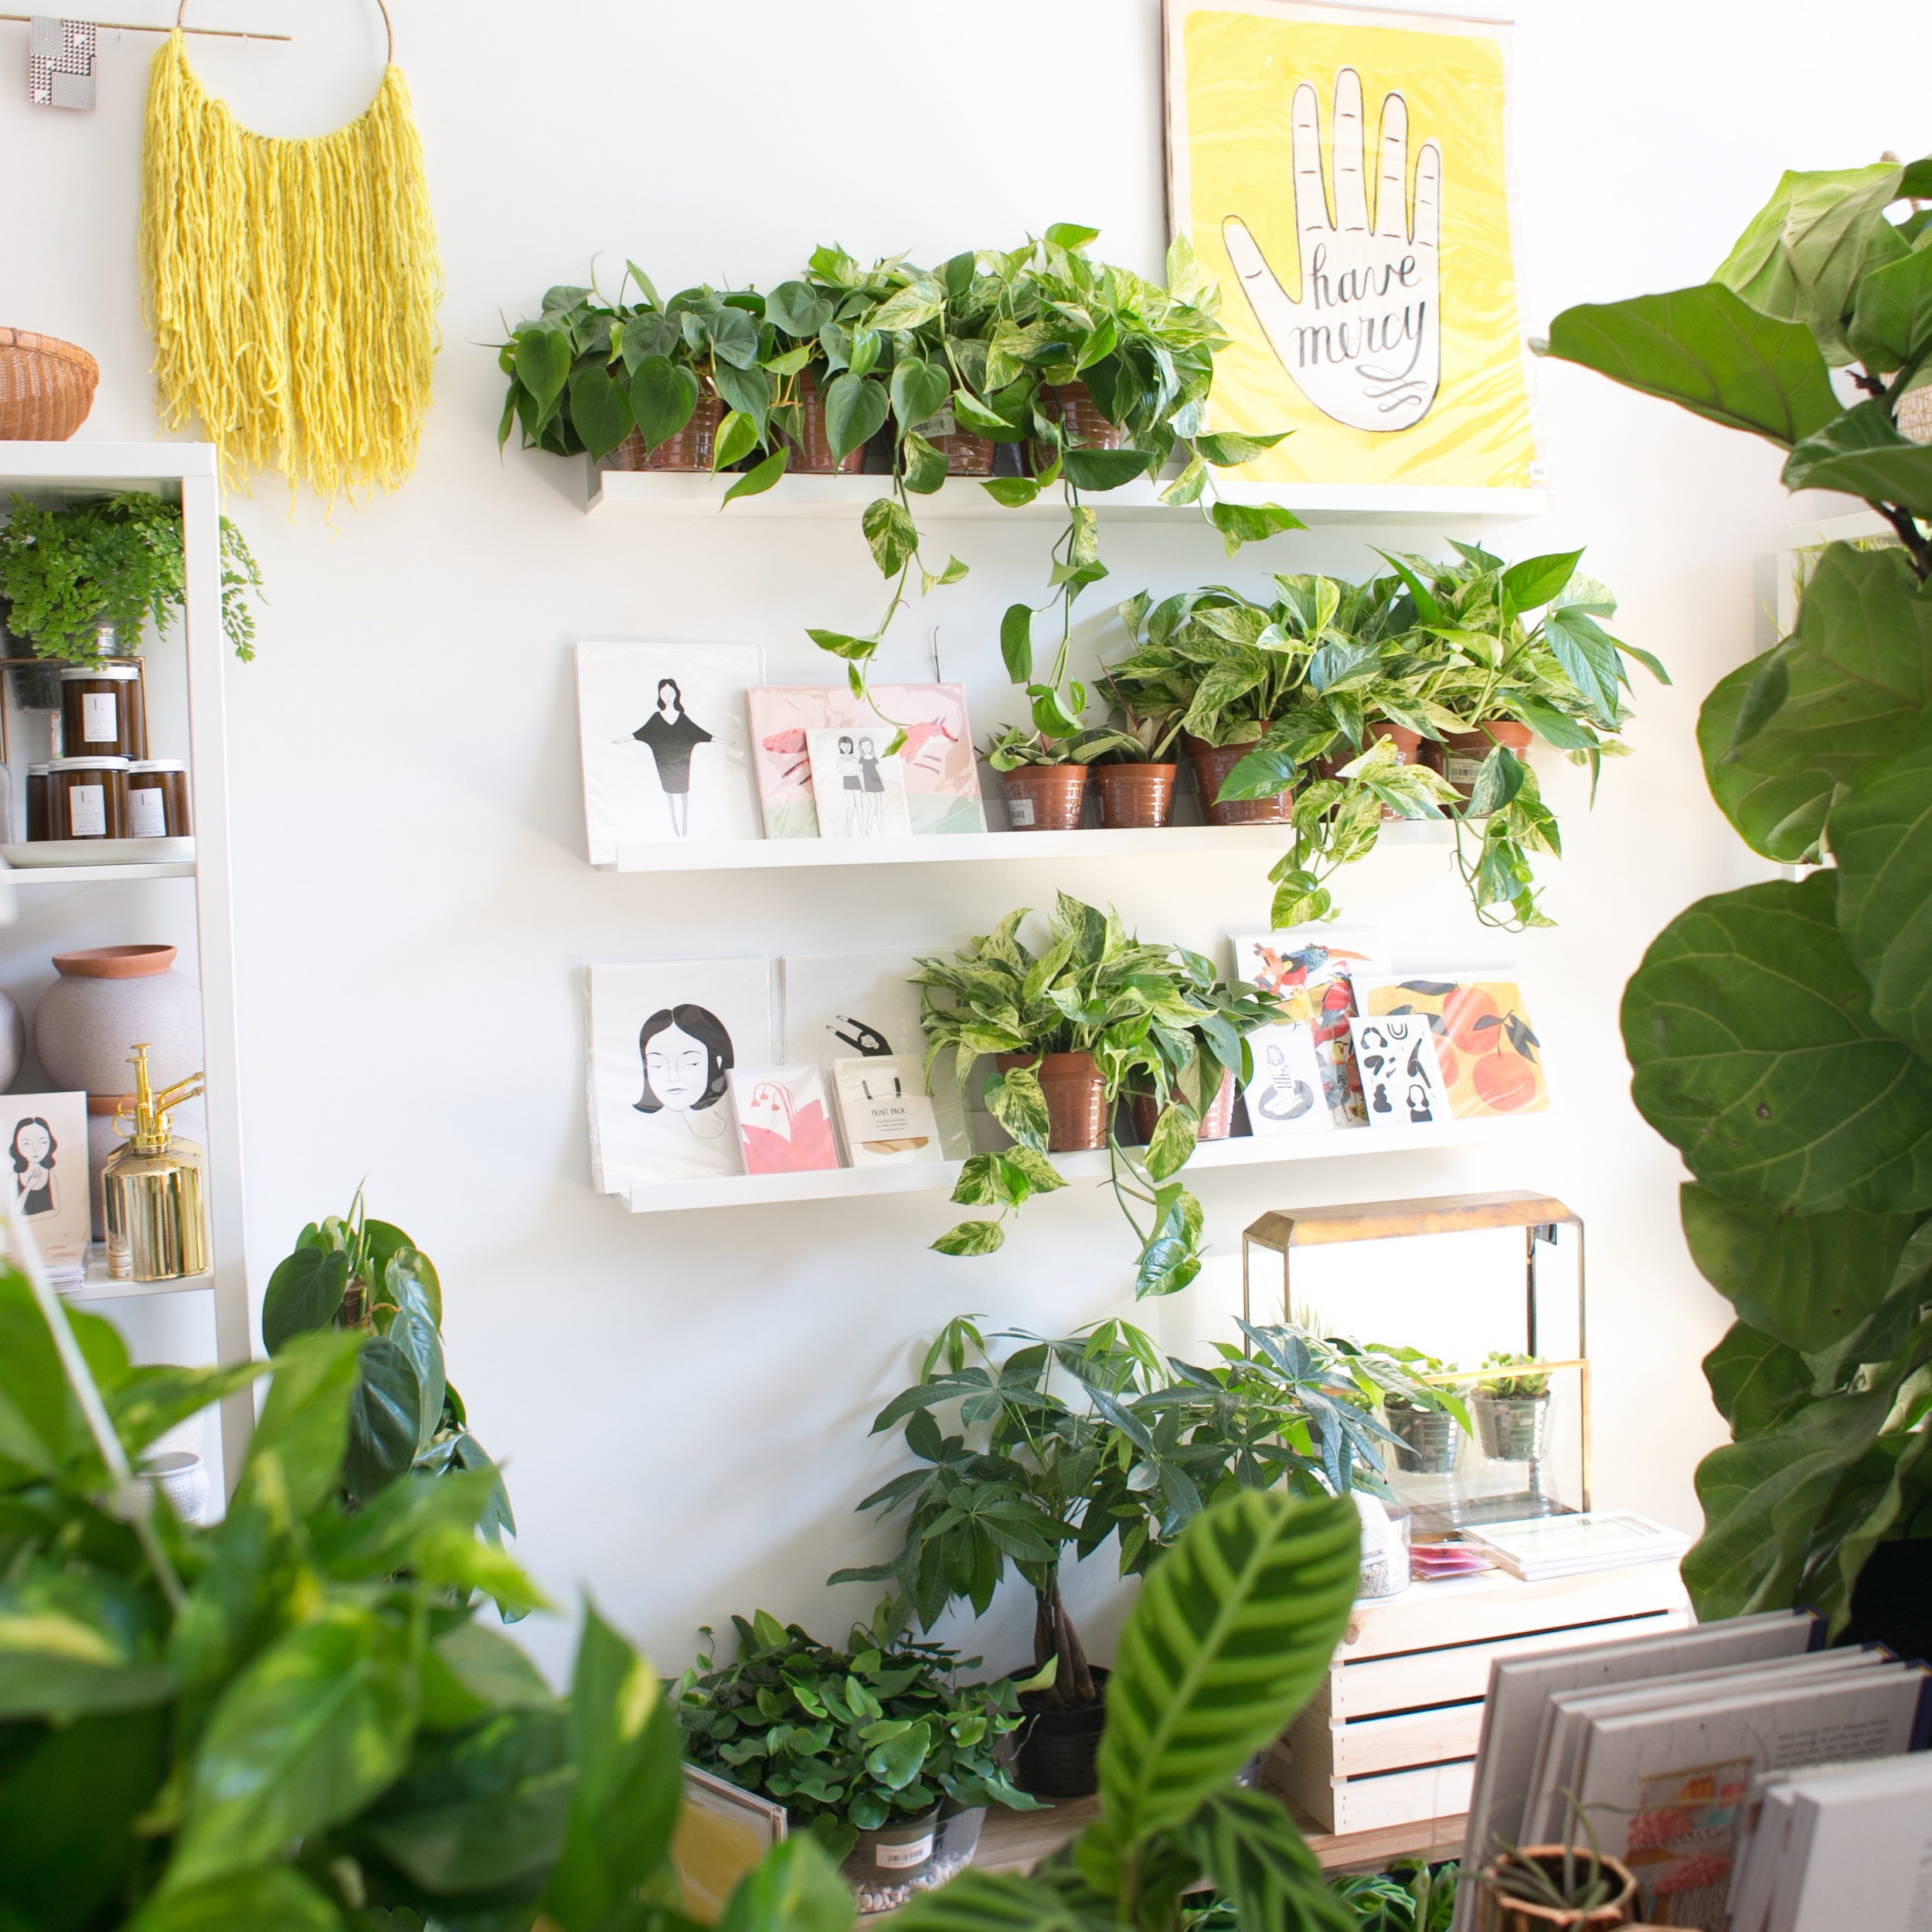 The ZEN Succulent - A neighborhood plant & gift shop full of unique greenery and handcrafted gifts from emerging makers - featuring modern terrariums, workshops, and DIY Terrarium Bar with storefront locations in Downtown Raleigh and Downtown Durham.208 S Wilmington St.